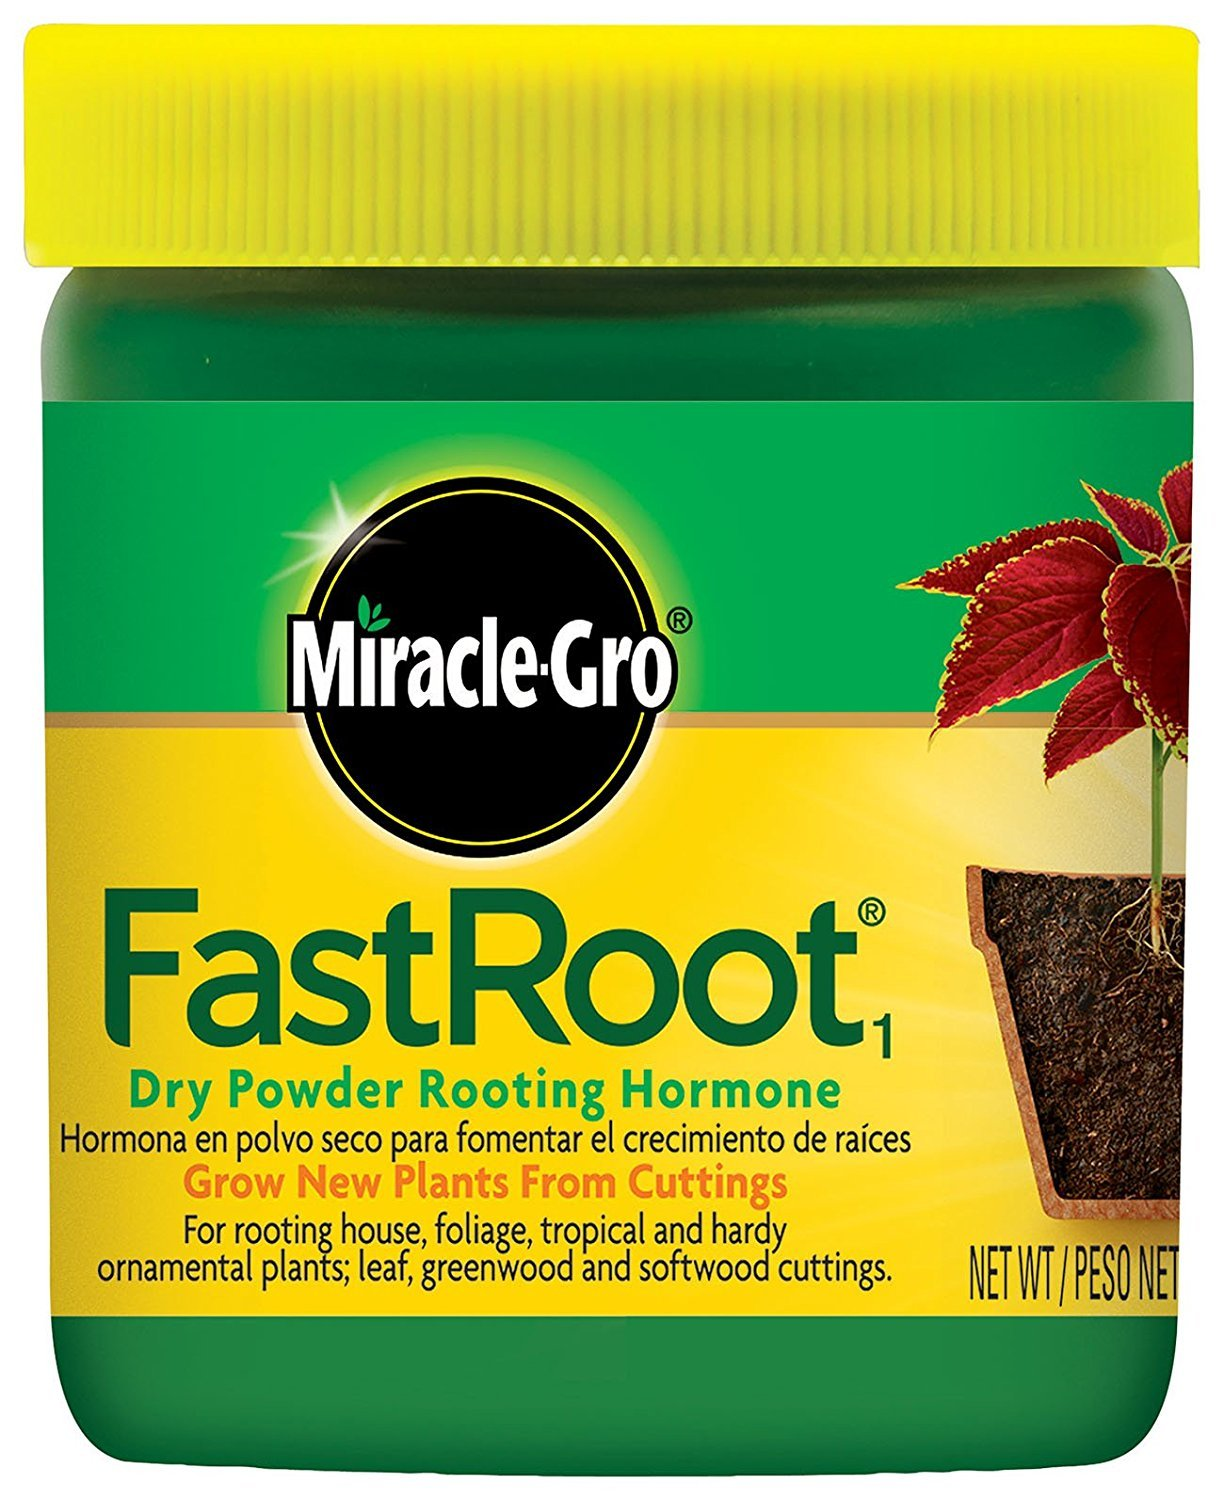 Miracle-Gro FastRoot Dry Powder Rooting Hormone Jar, 1-1/4-Ounce (2 Pack)